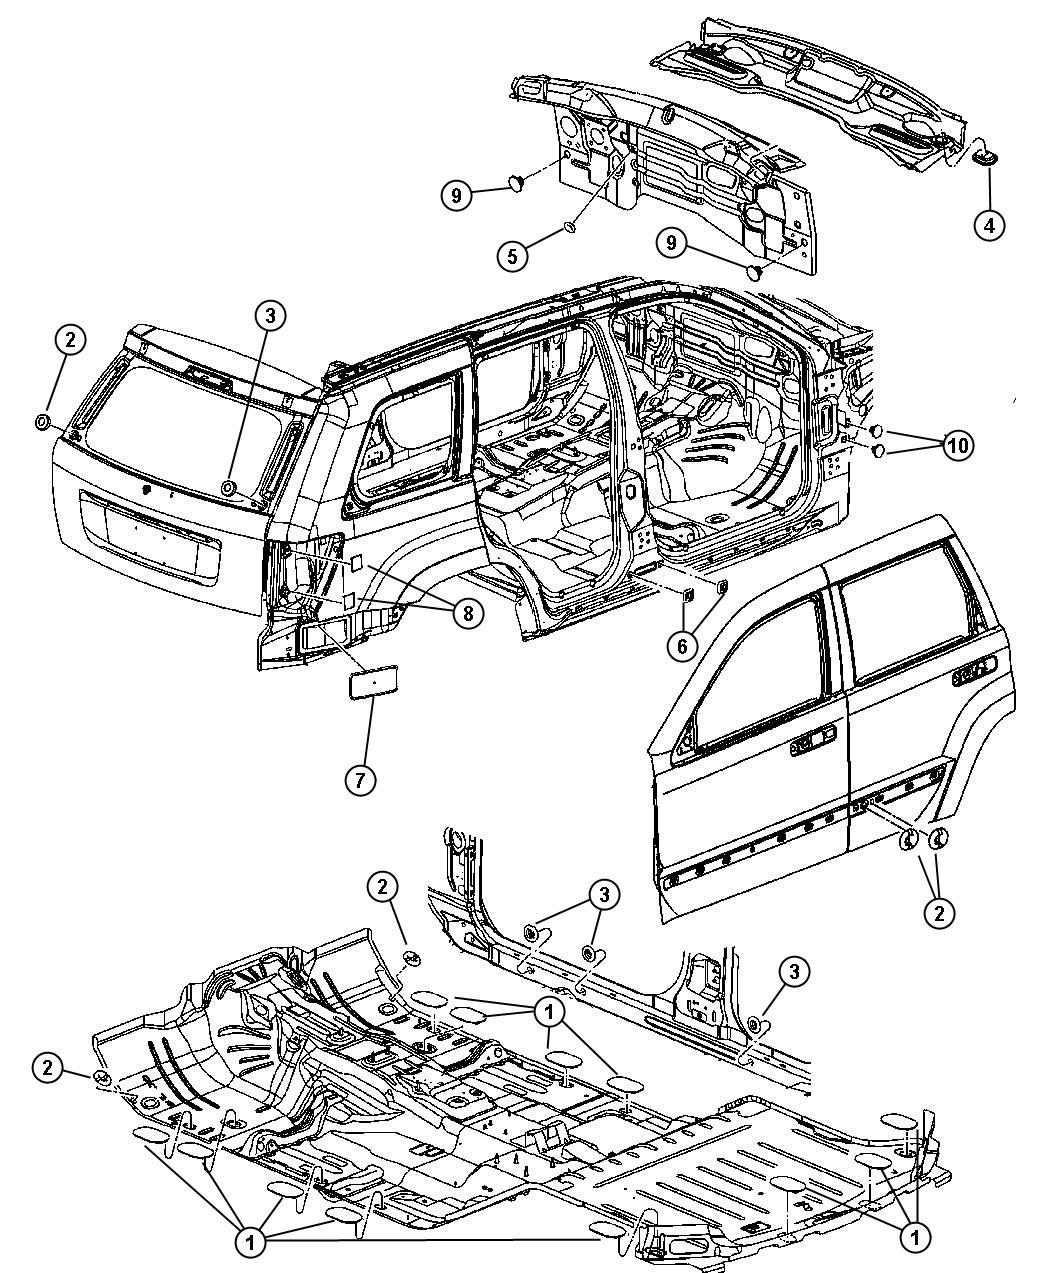 87 Mazda B2200 Engine Diagram. Mazda. Auto Wiring Diagram